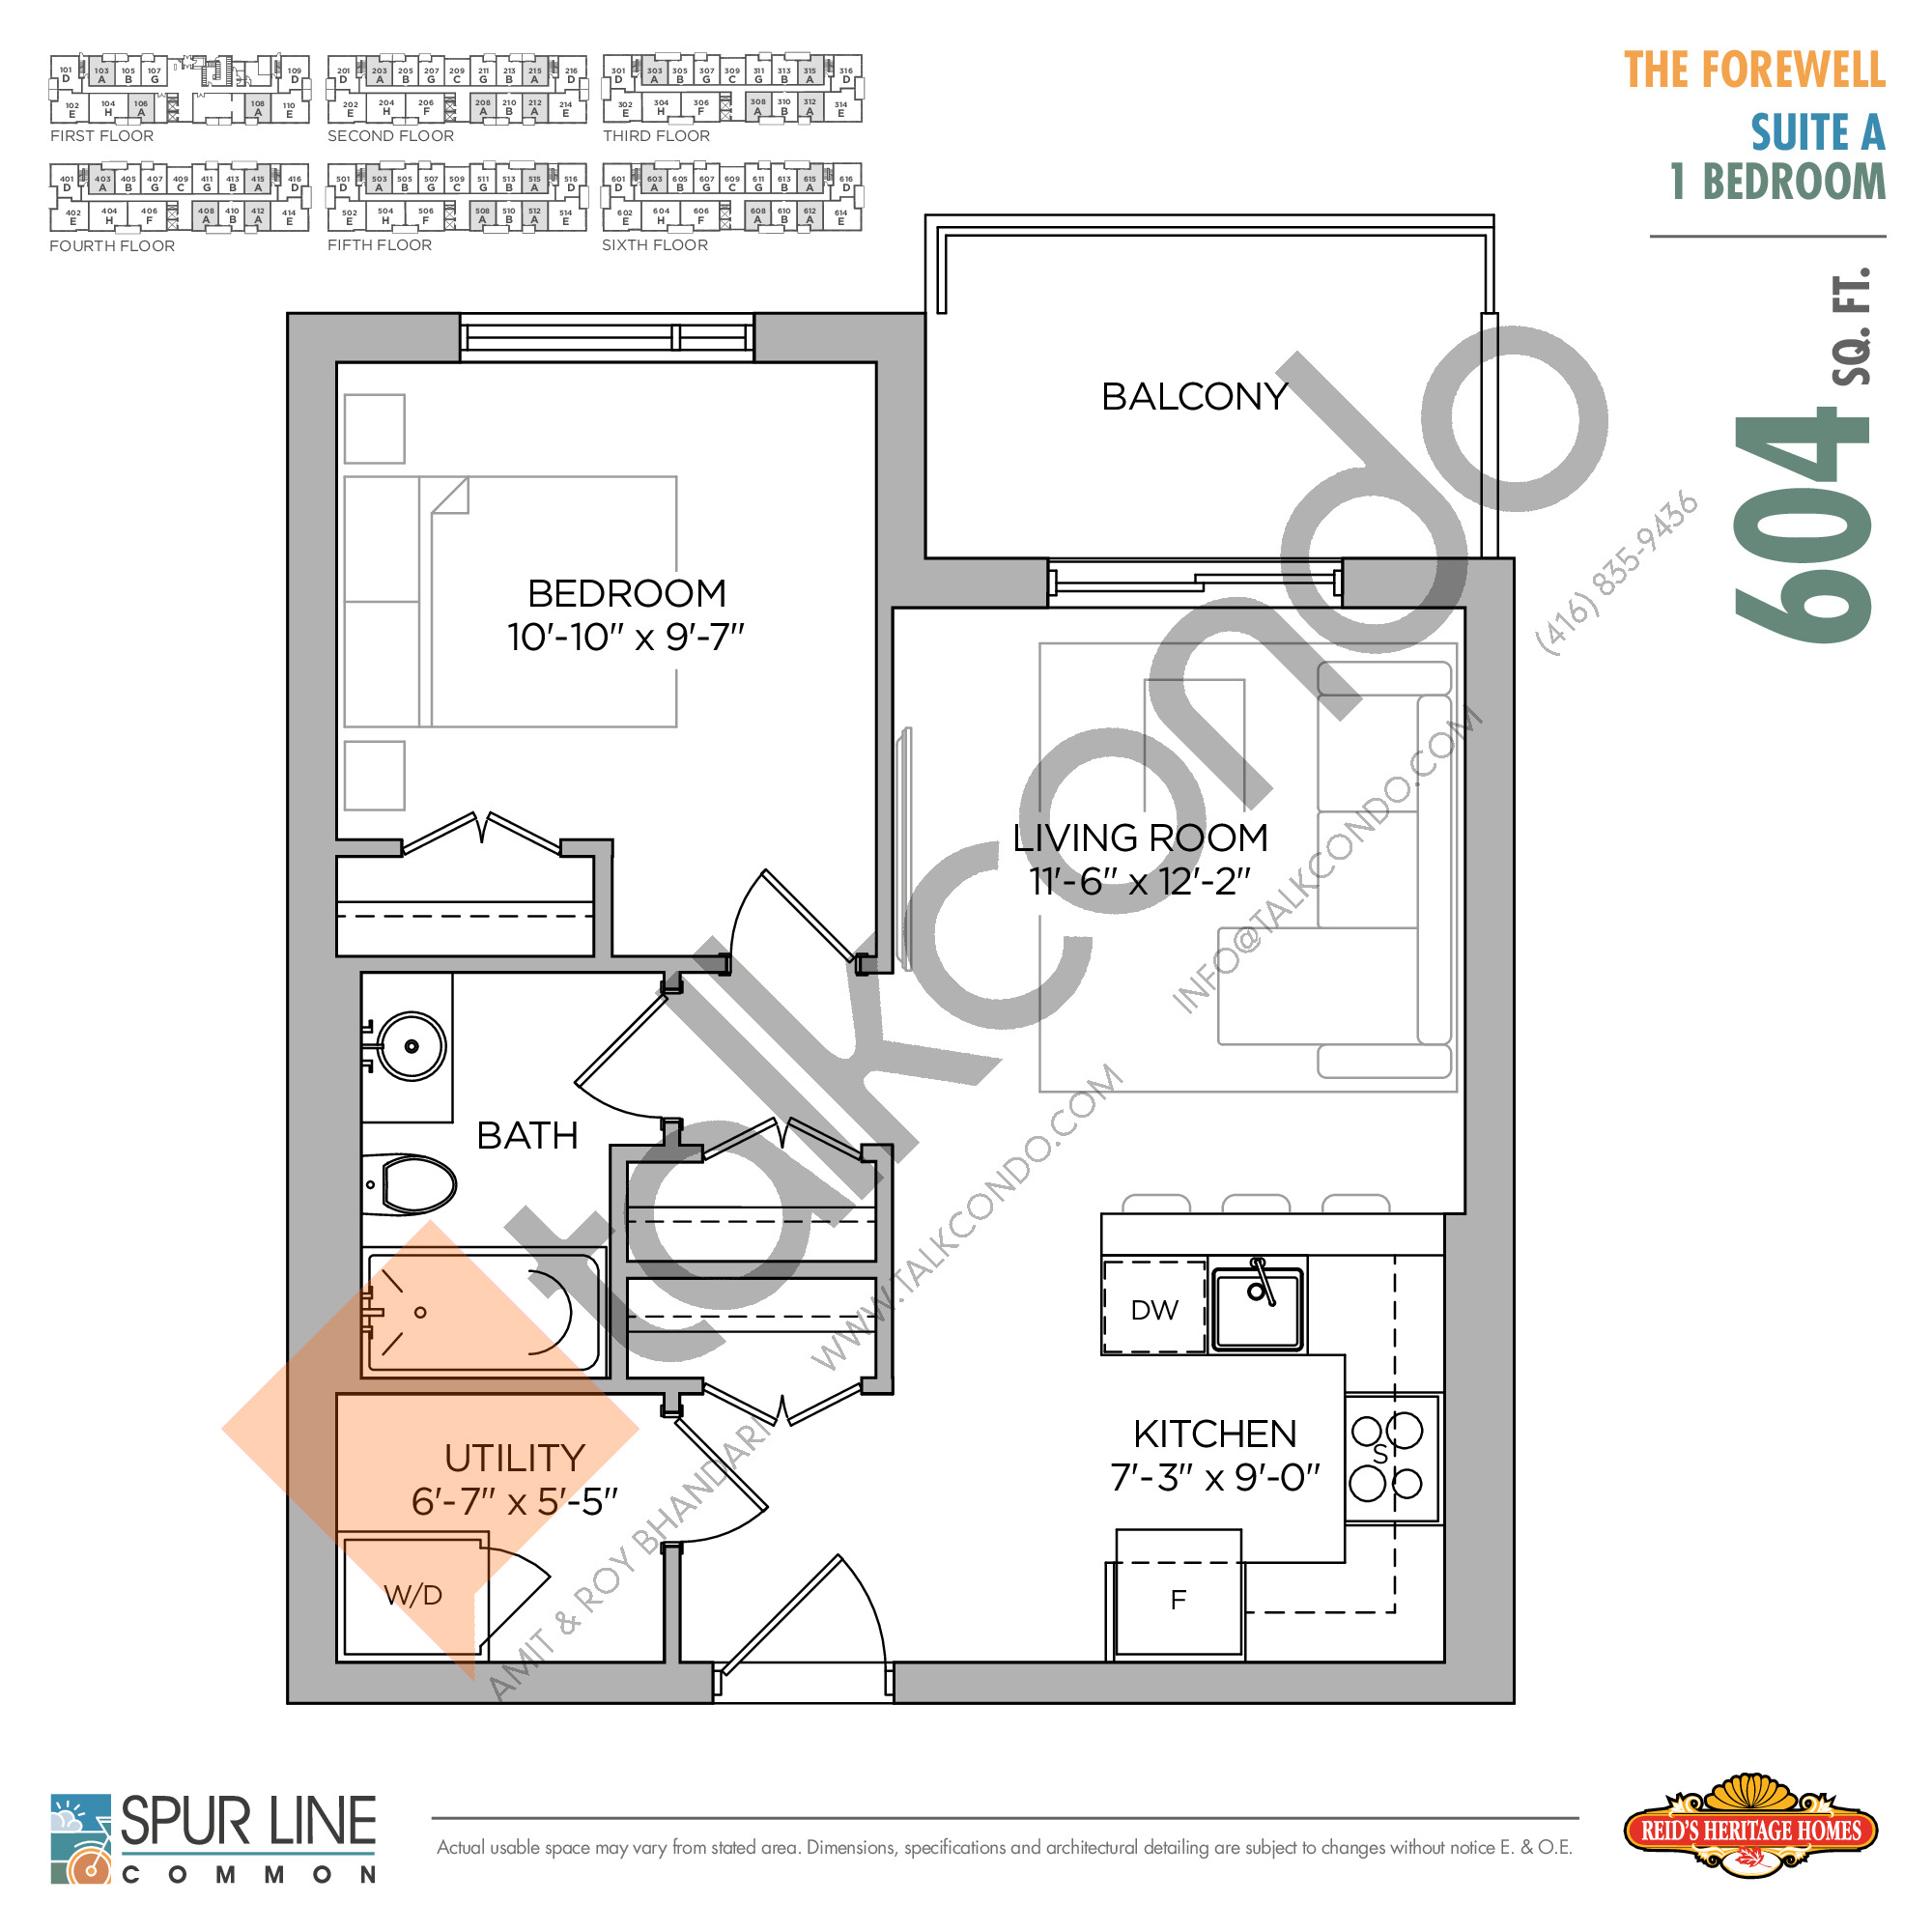 The Forewell Floor Plan at Spur Line Common Condos - 604 sq.ft